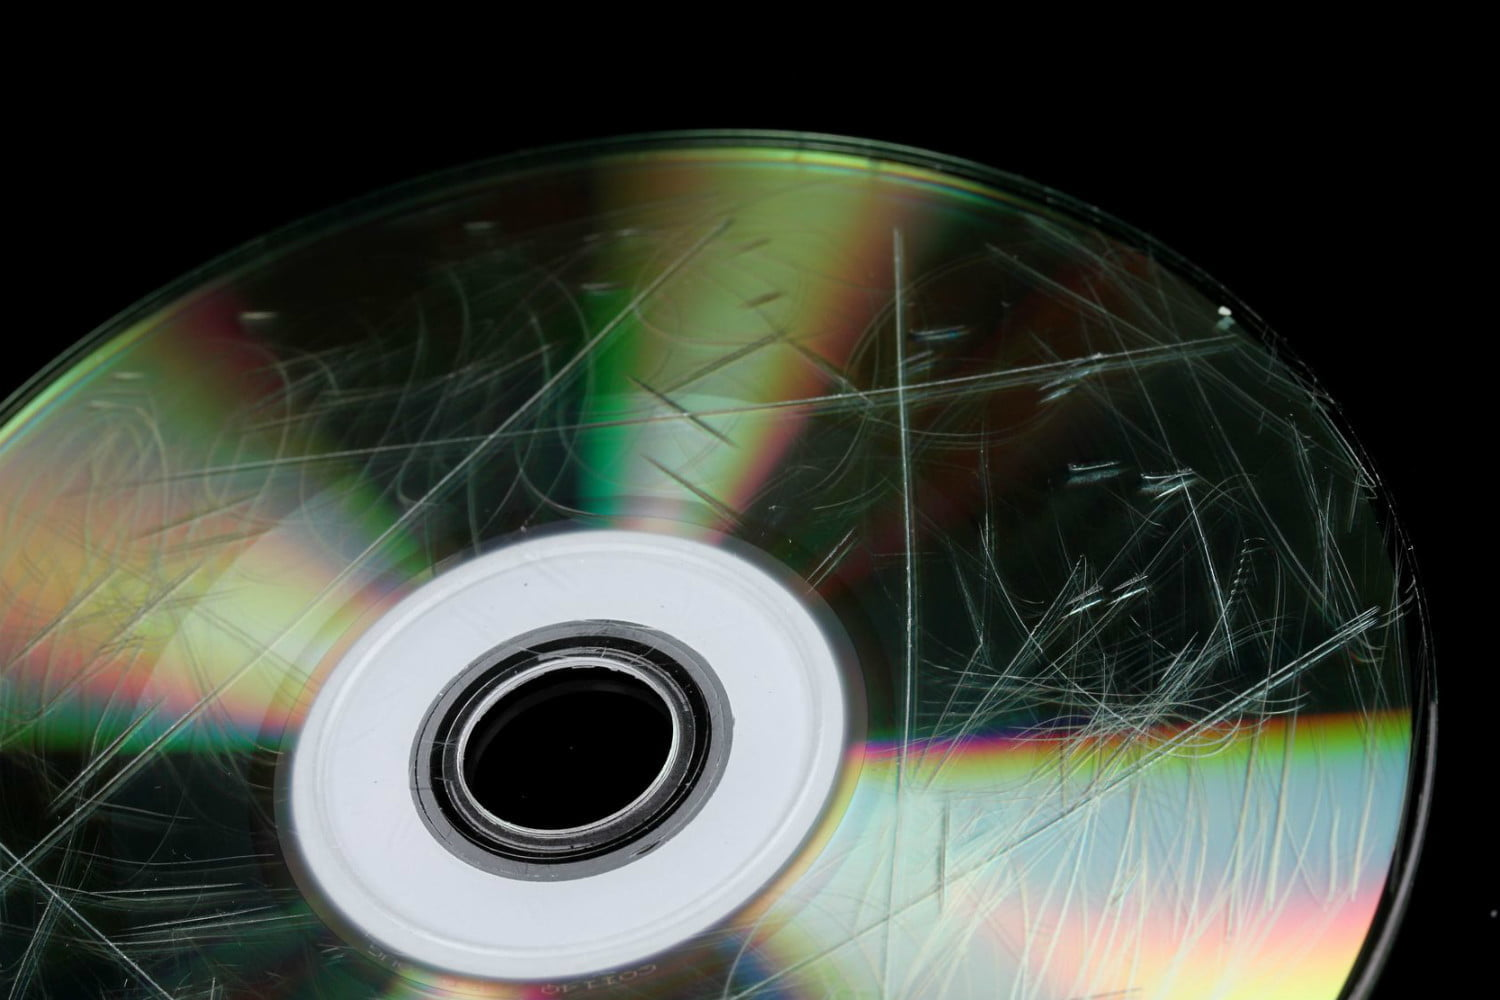 How to fix a scratched DVD or CD